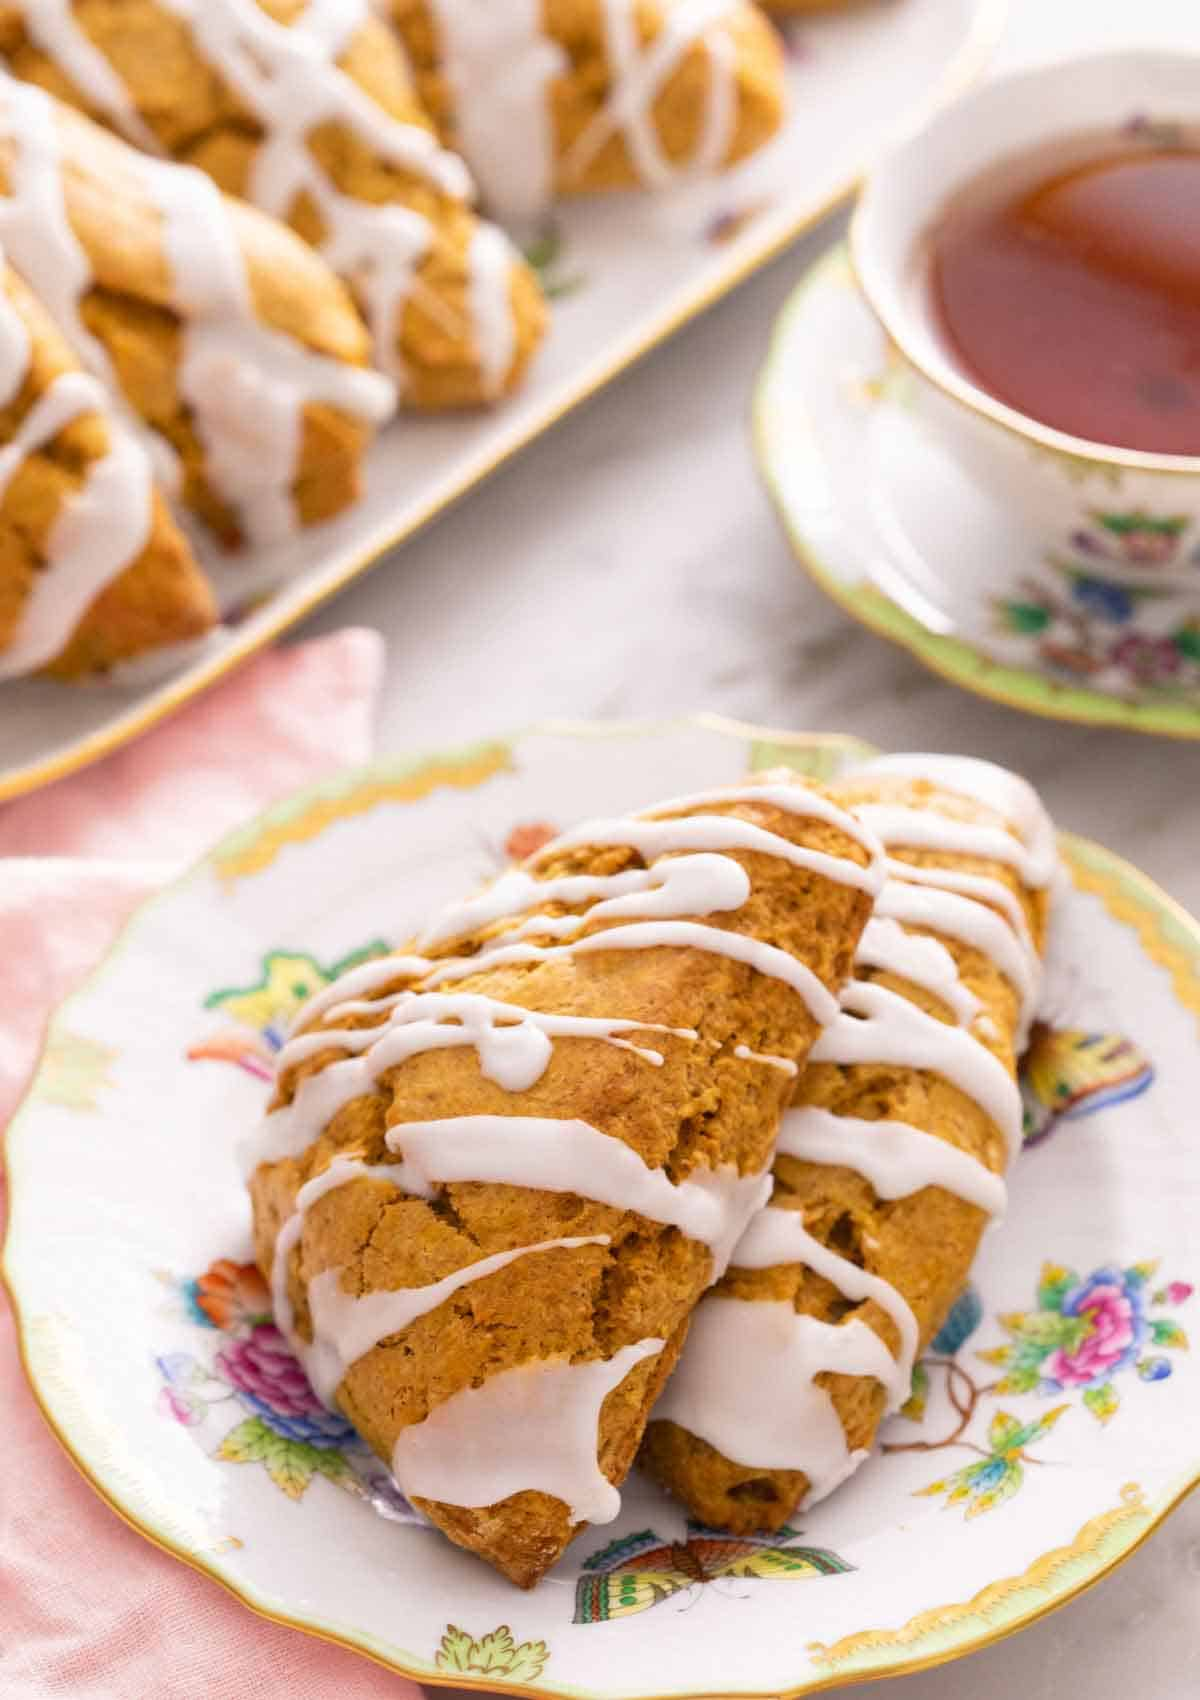 A plate with two pumpkin scones in front of a cup of tea and platter.